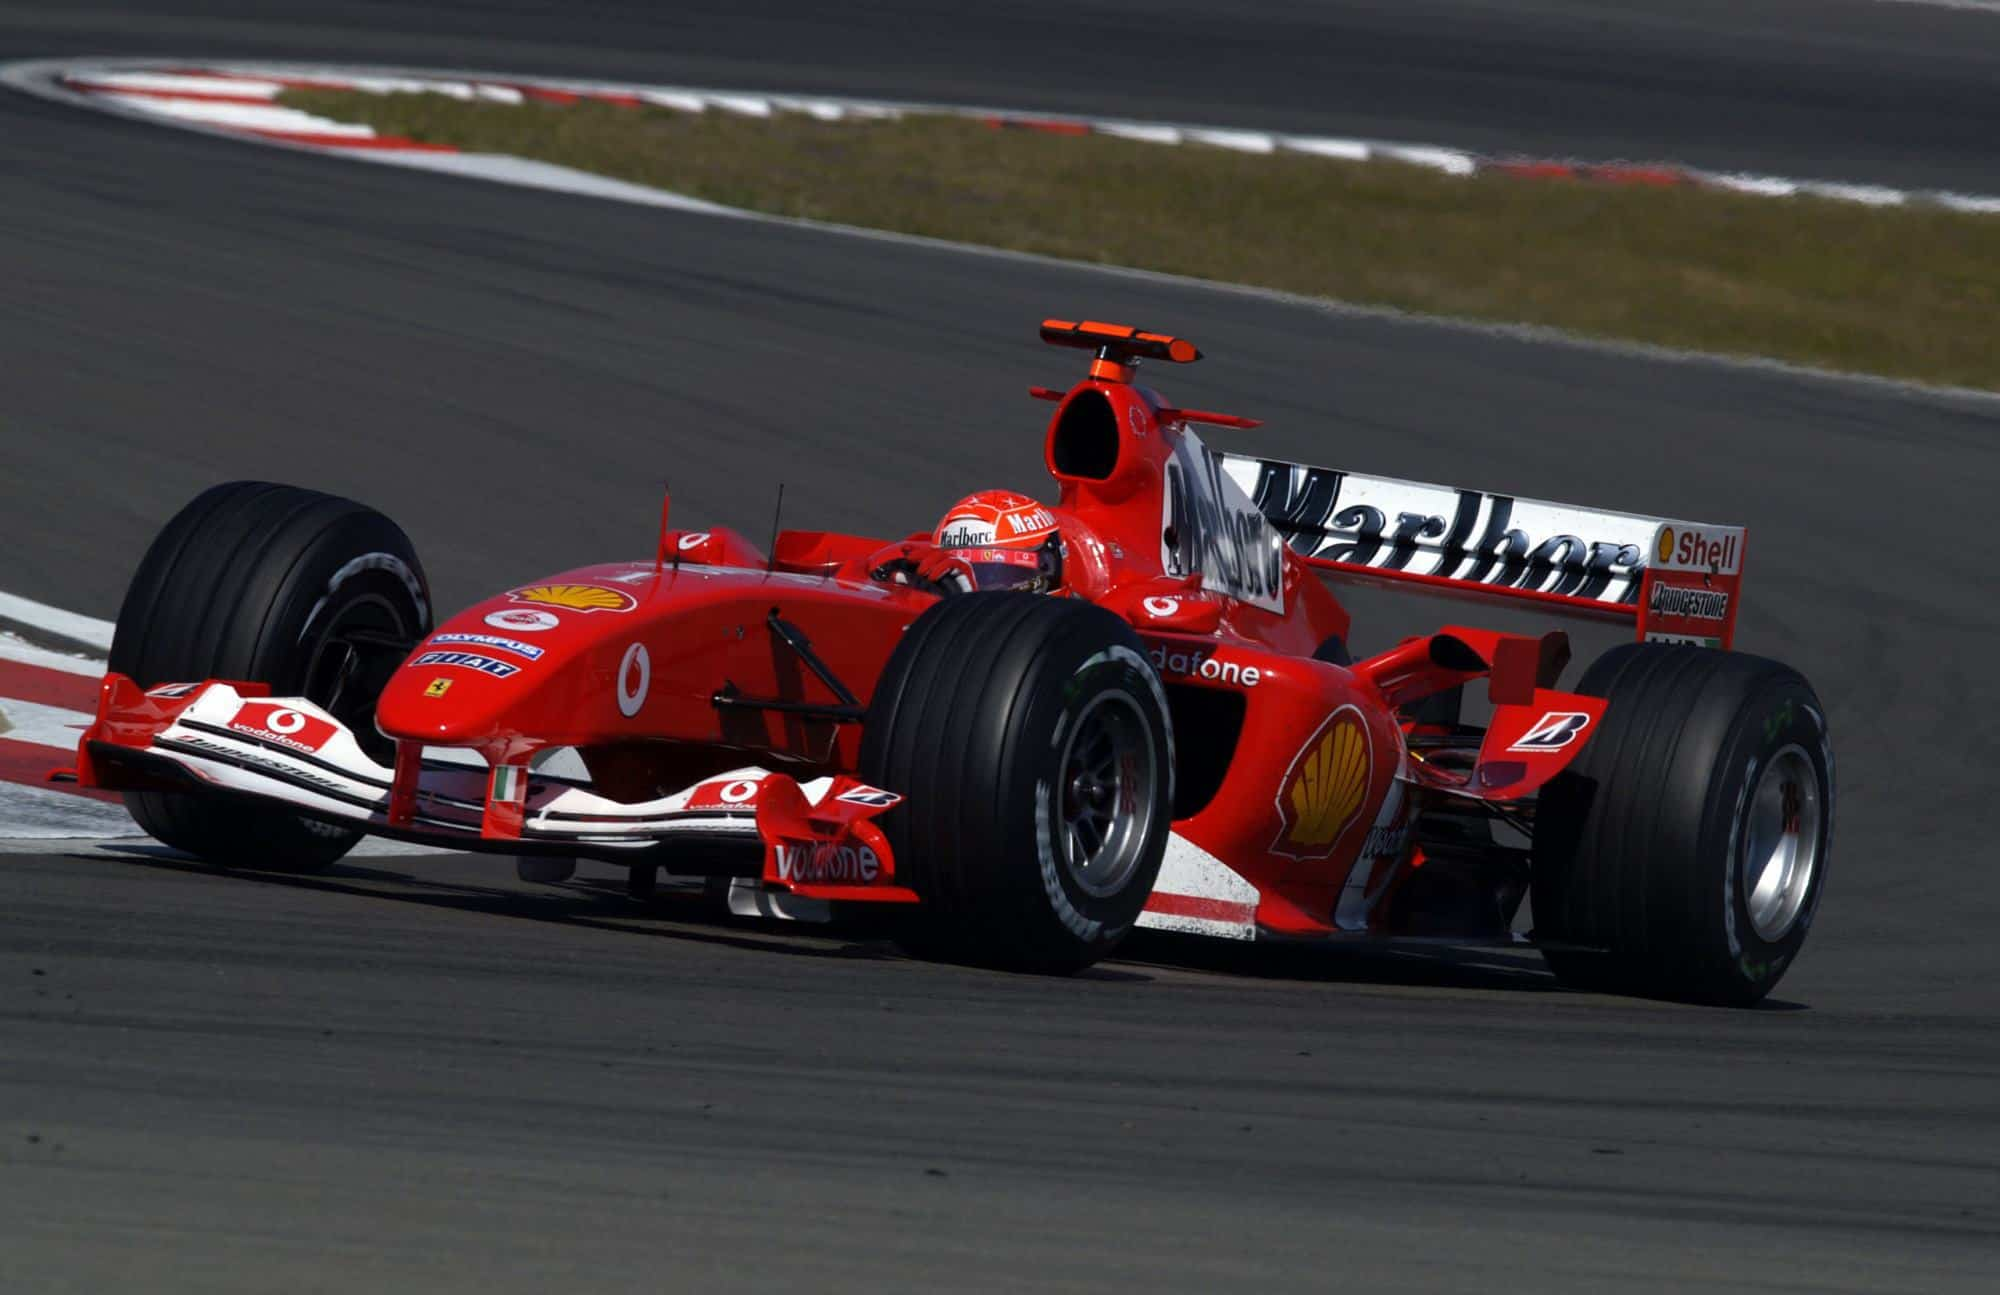 Michael-Schumacher-Ferrari-F2004-European-GP-Nurburgring-2-Photo-Ferrari